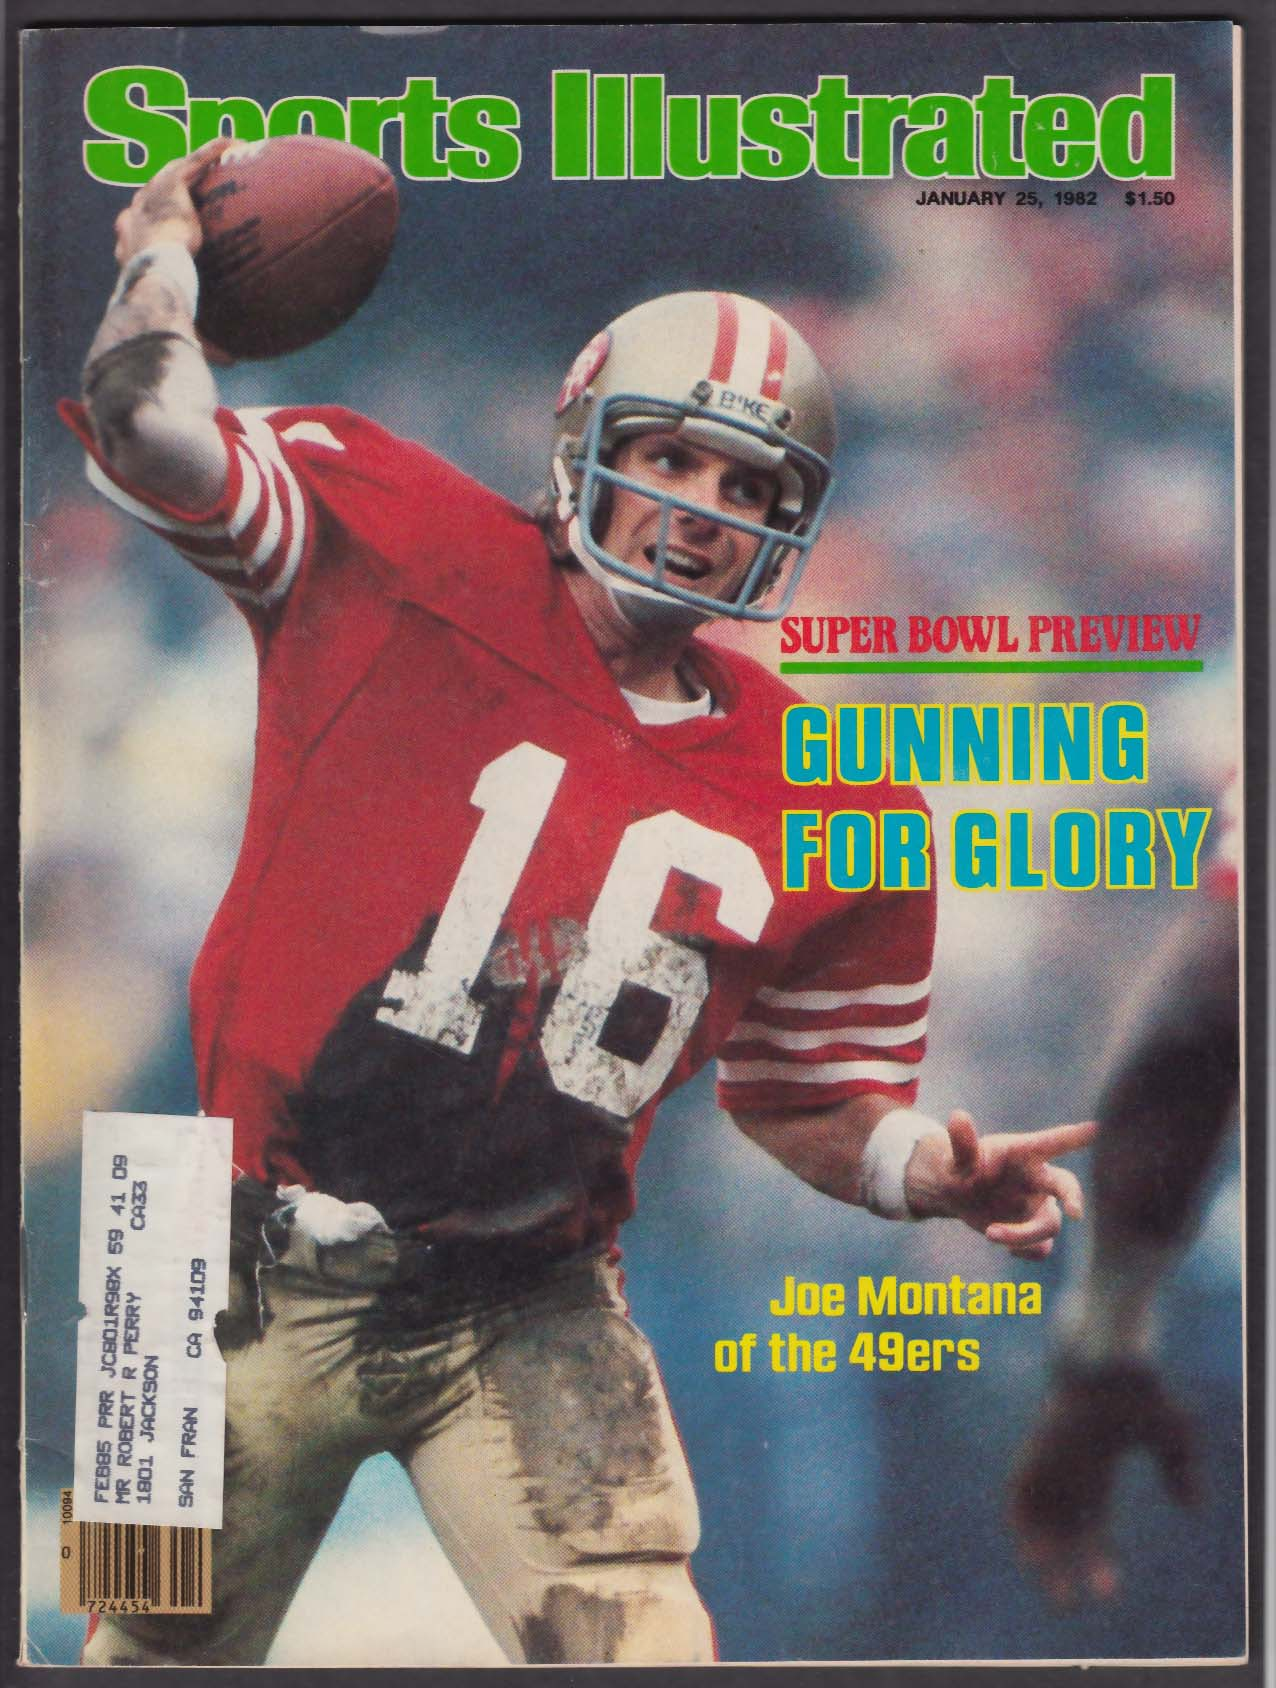 SPORTS ILLUSTRATED Joe Montana Billy Olson Carl Lewis Ivan Lendl ++ 1/25 1982